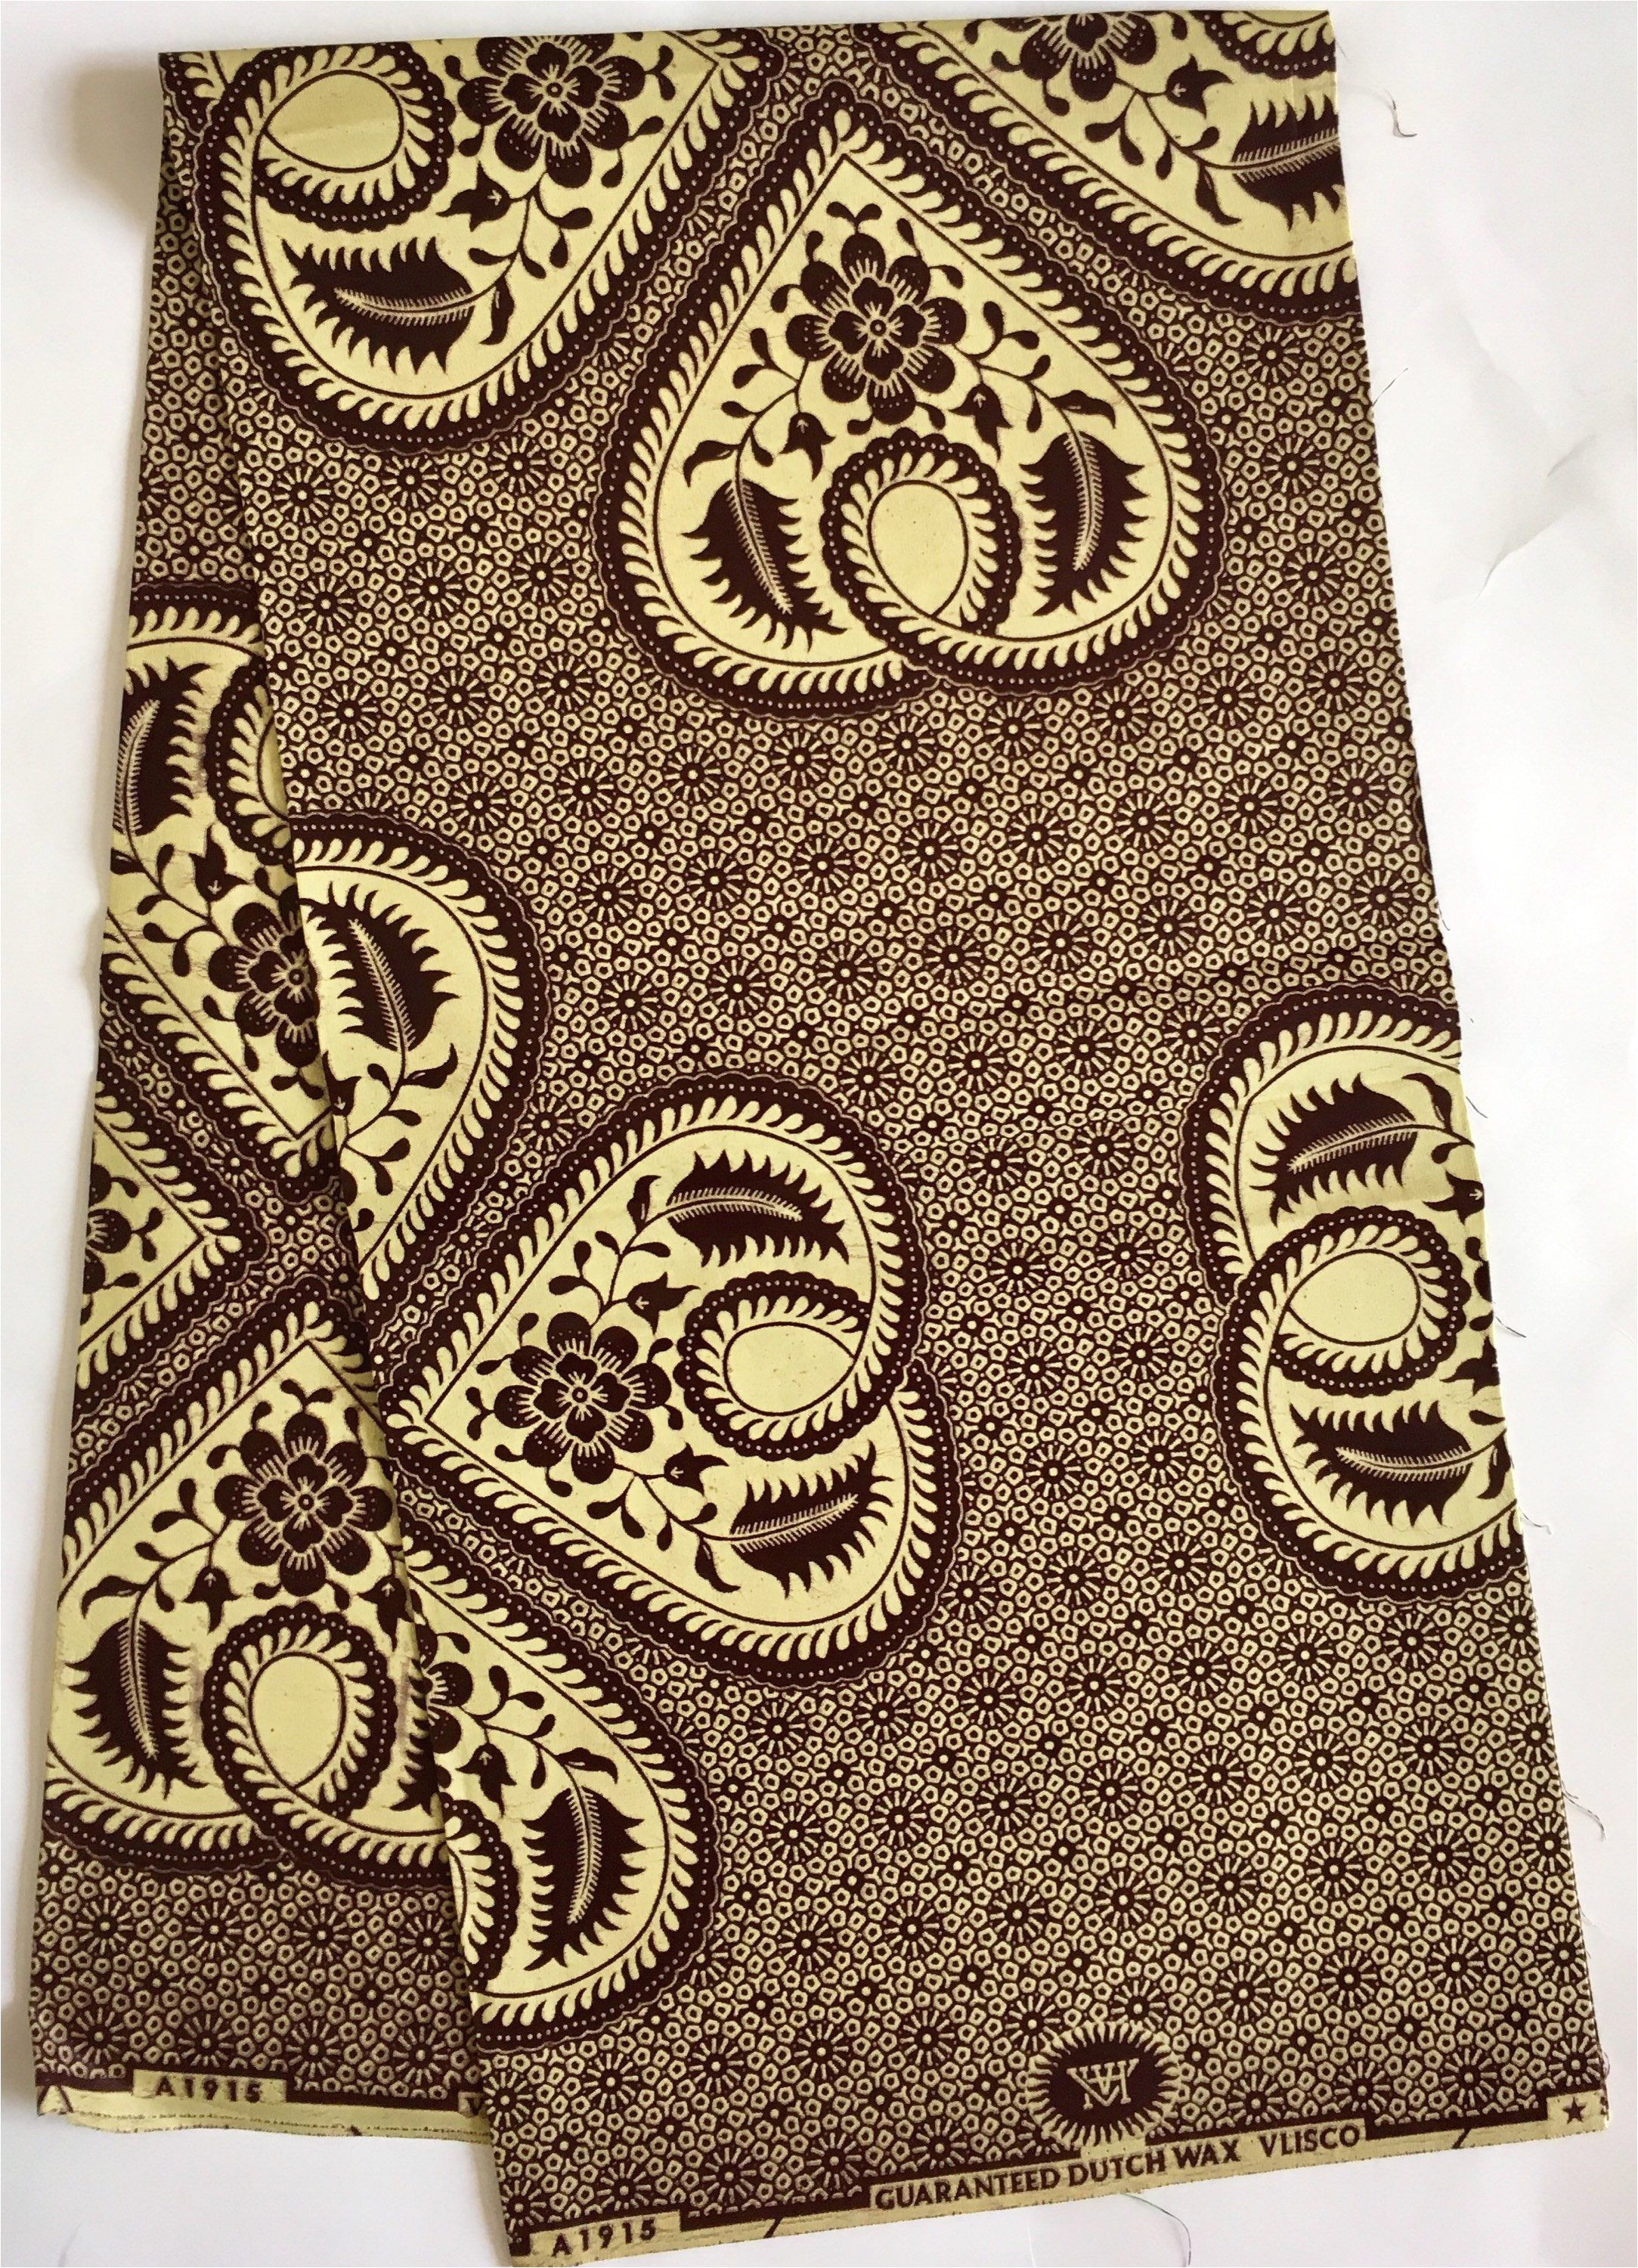 mudcloth fabric by the yard house of mami wata african print fabrics https www etsy com